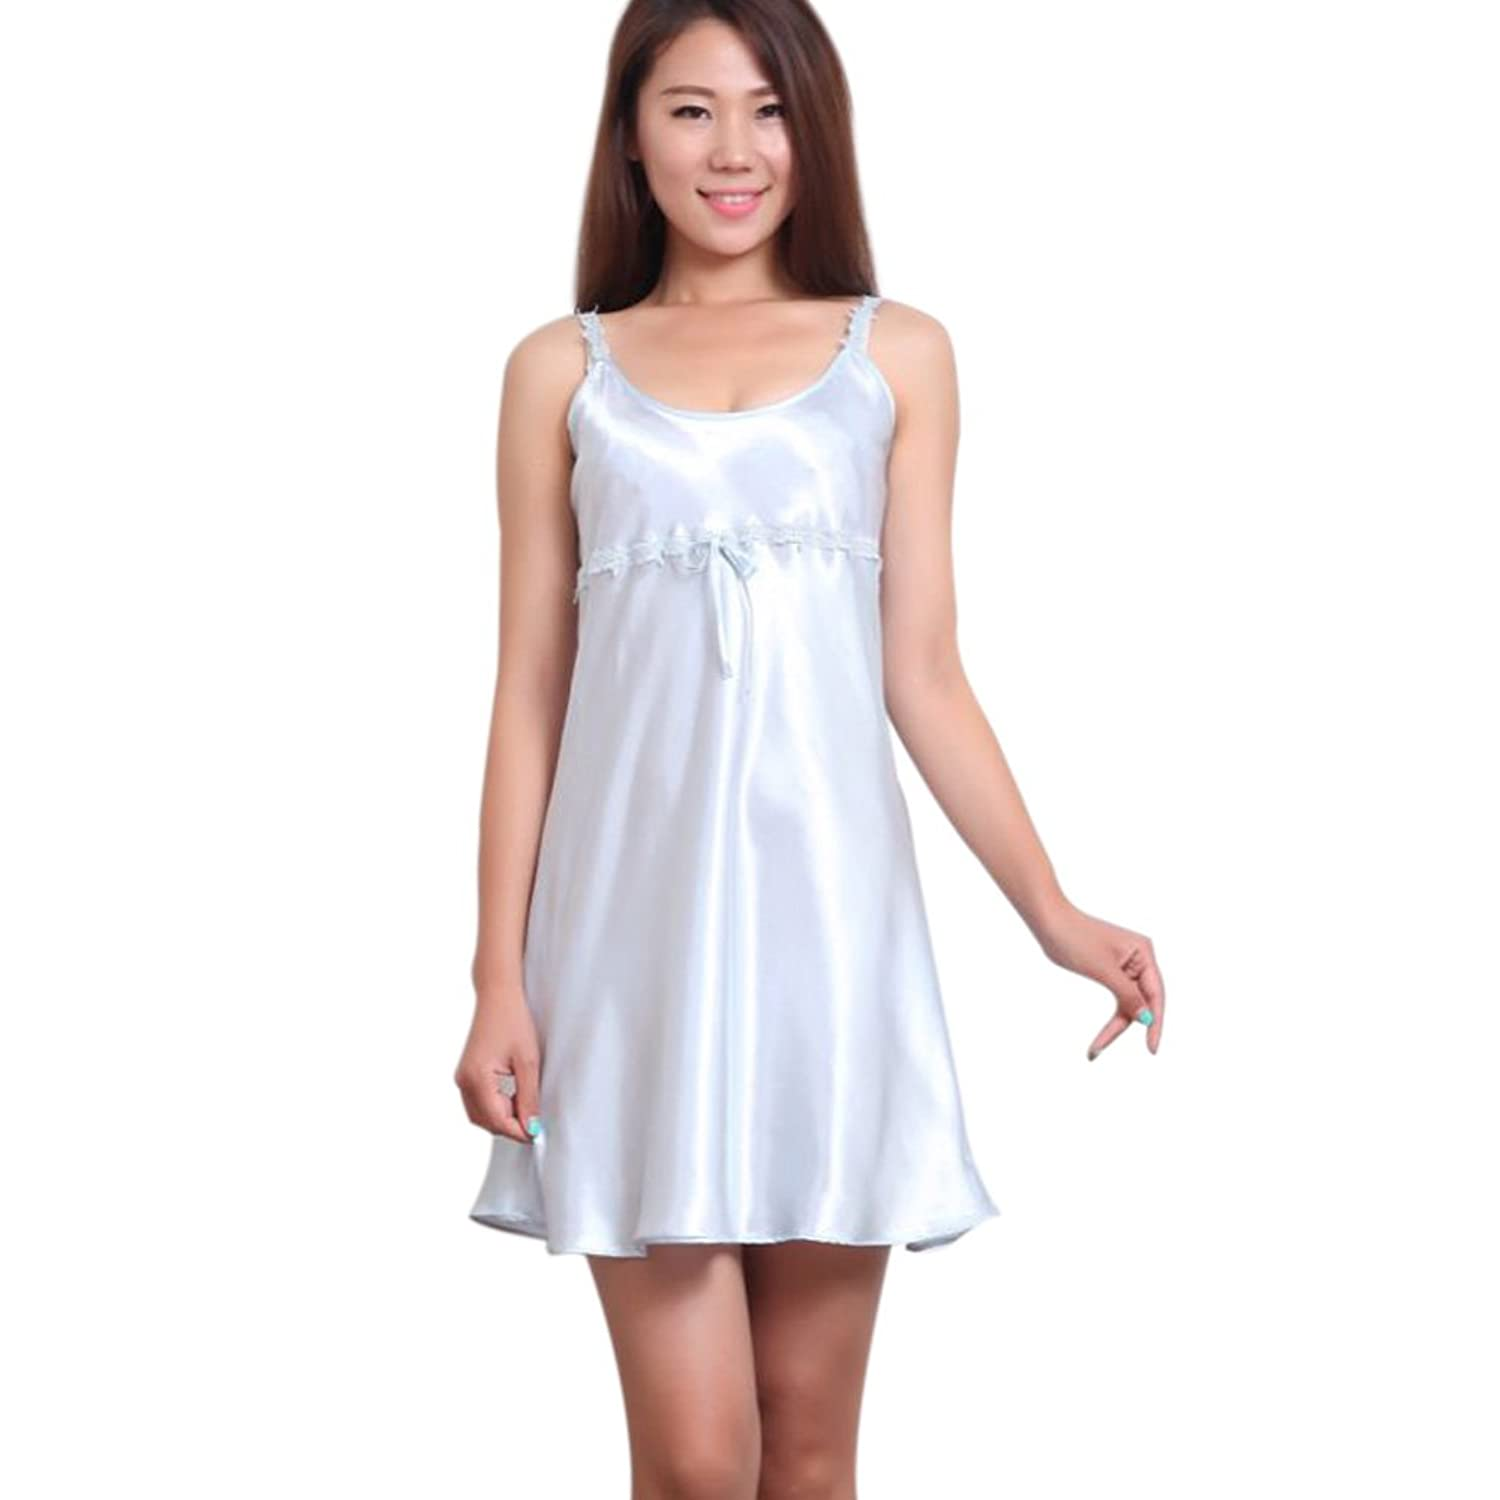 S-ZONE Summer Sexy Night-gowns Sleep Dress For Women,Silk,One-Piece аксессуары sonance cb1 one zone connecting block